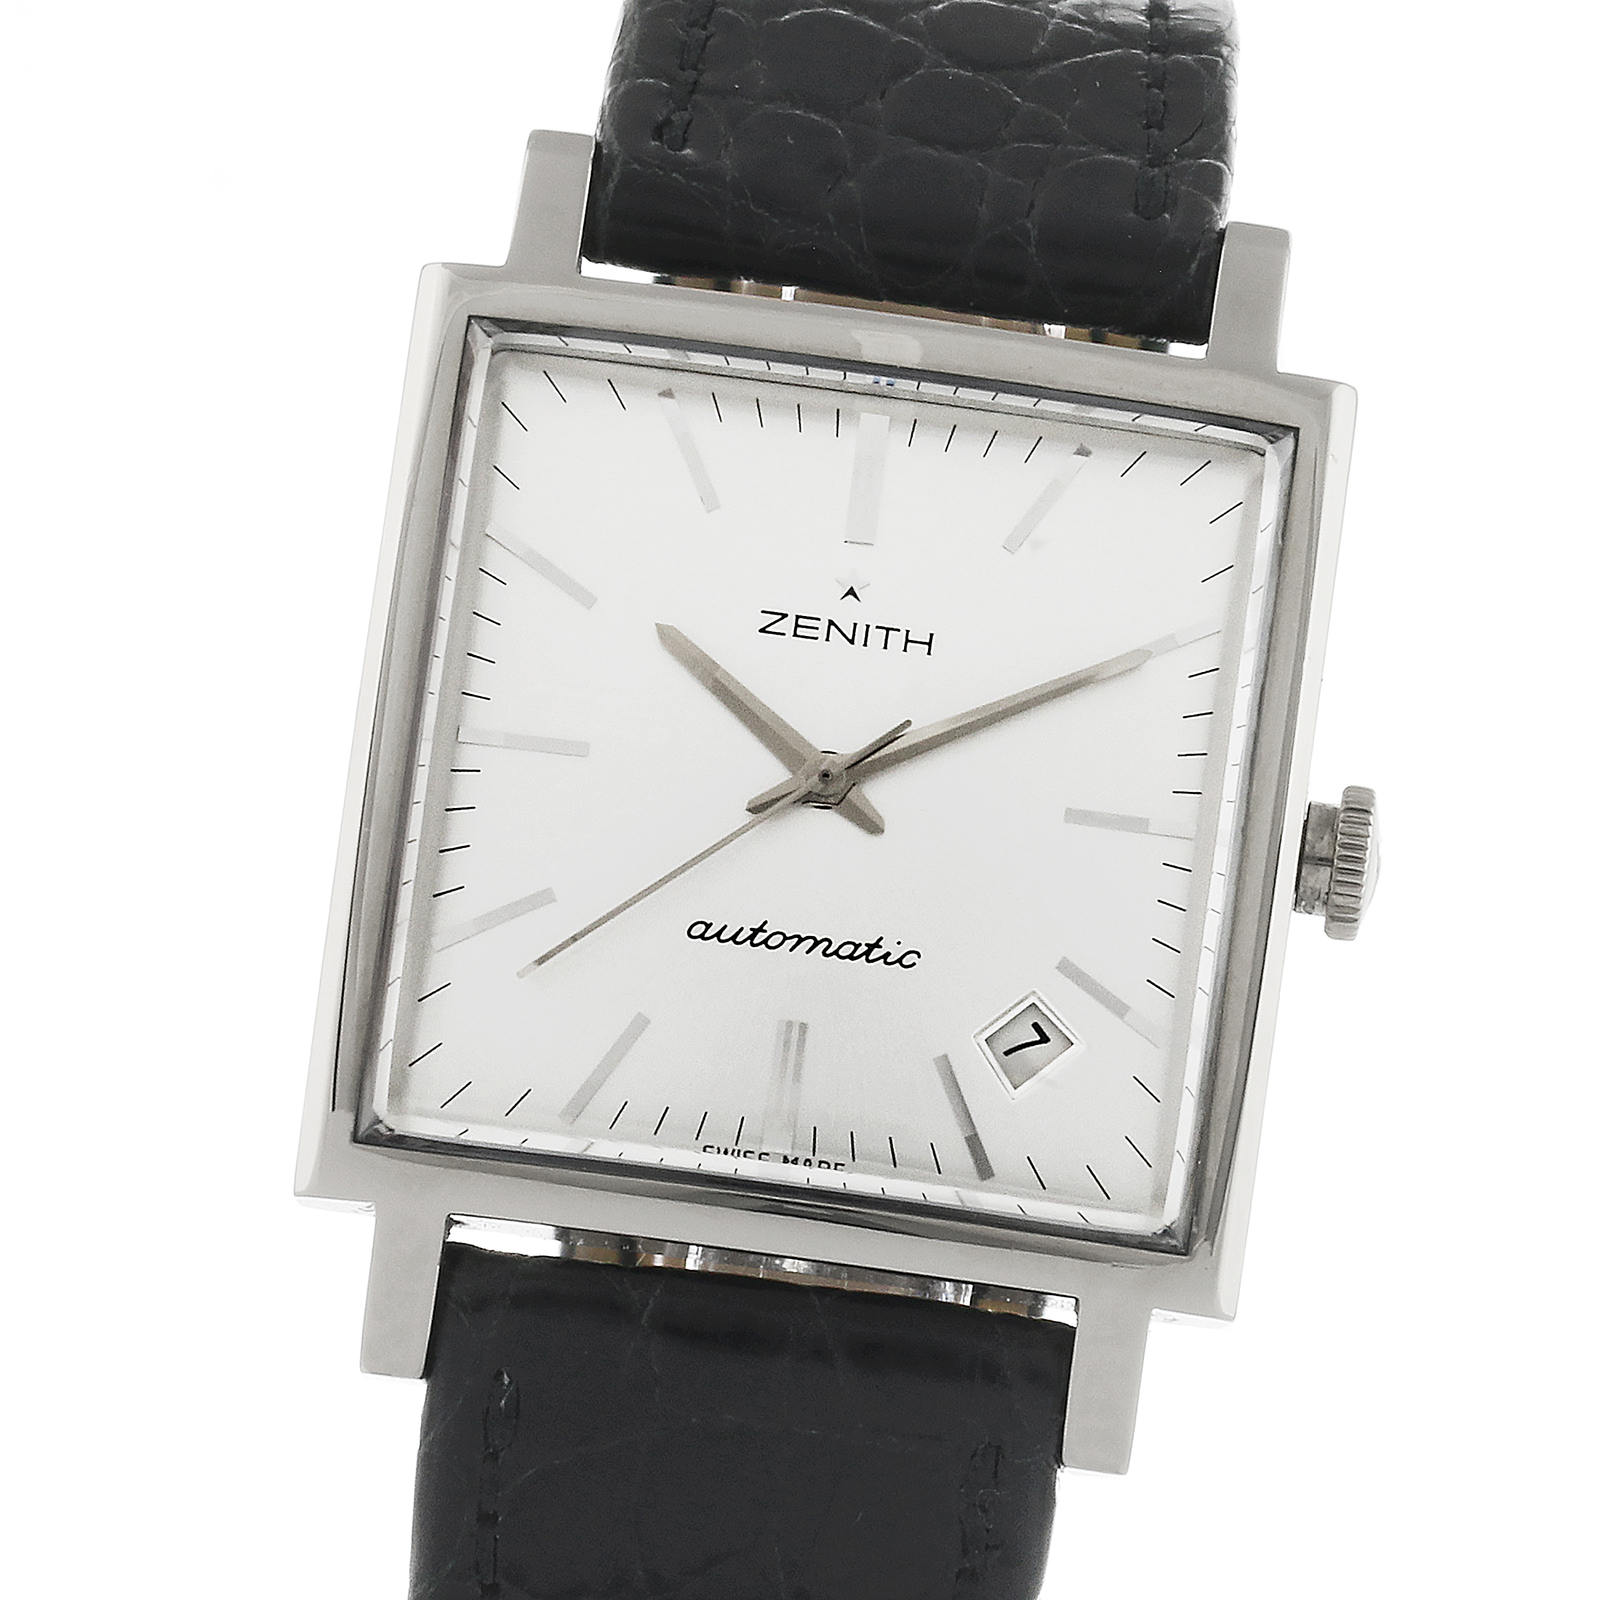 Pre-Owned Zenith Vinatge 1965 Mens Watch